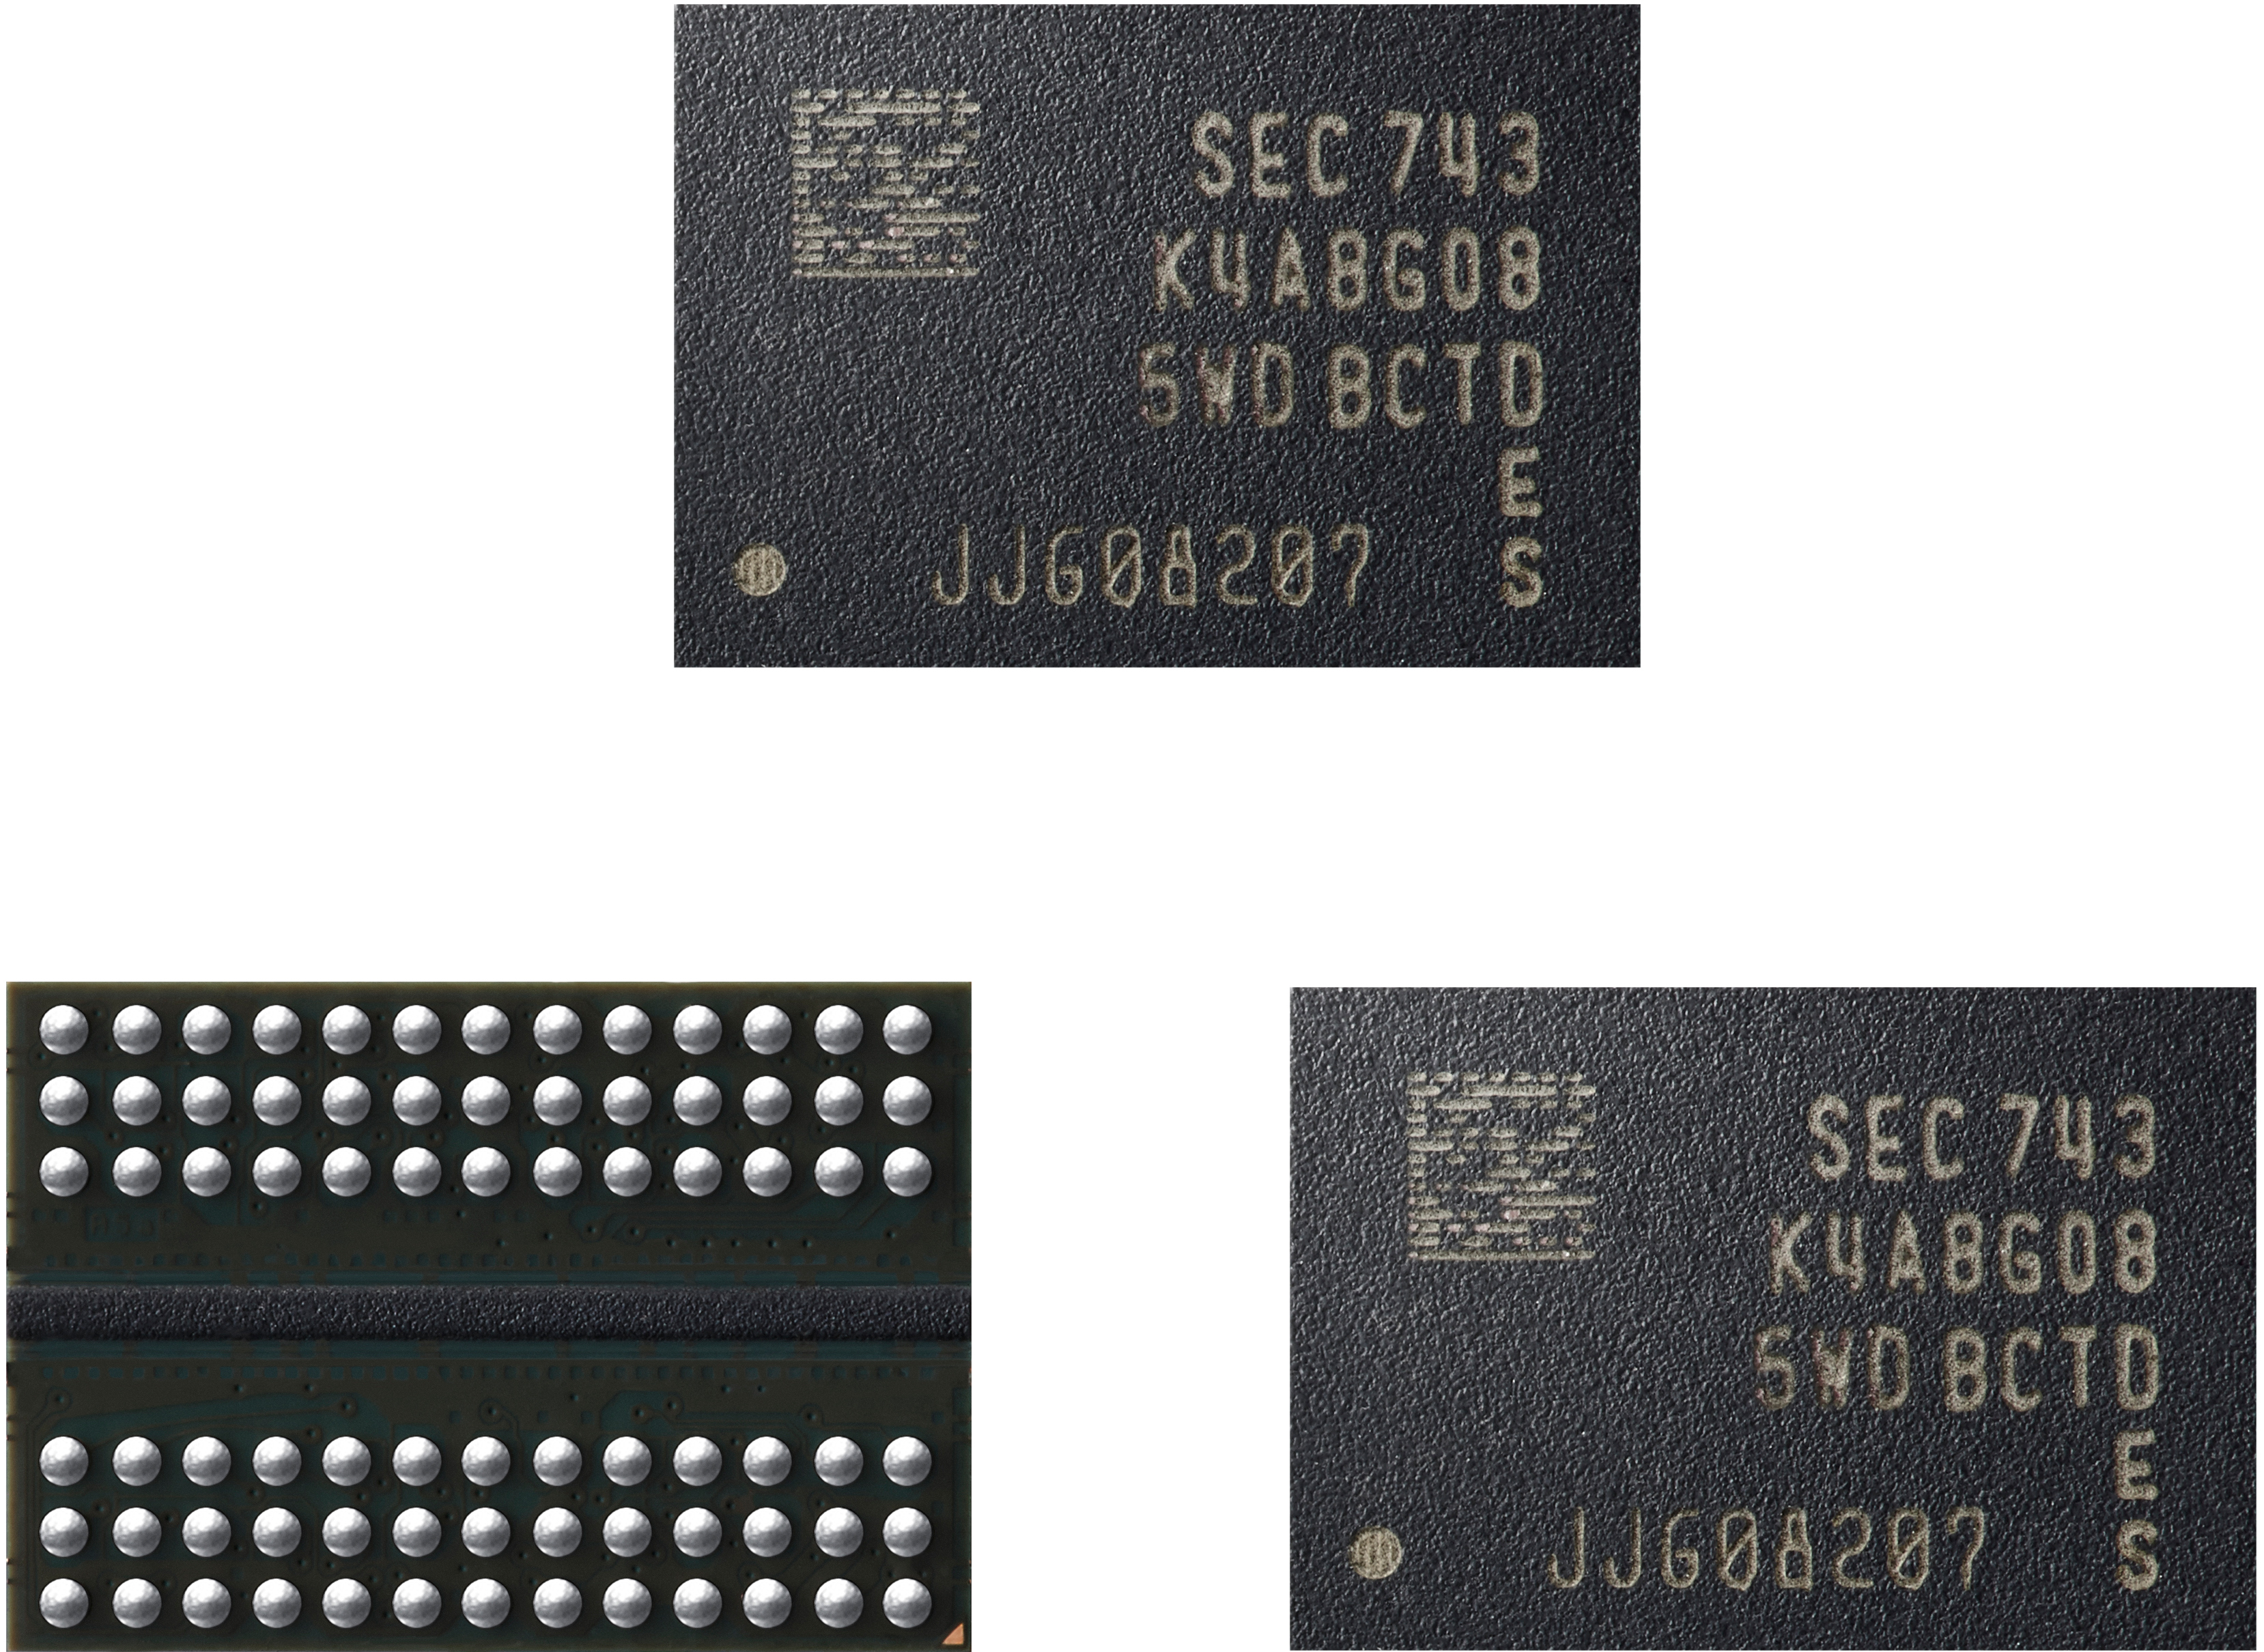 Samsung Launches Smaller And Faster DRAM Chip For PC